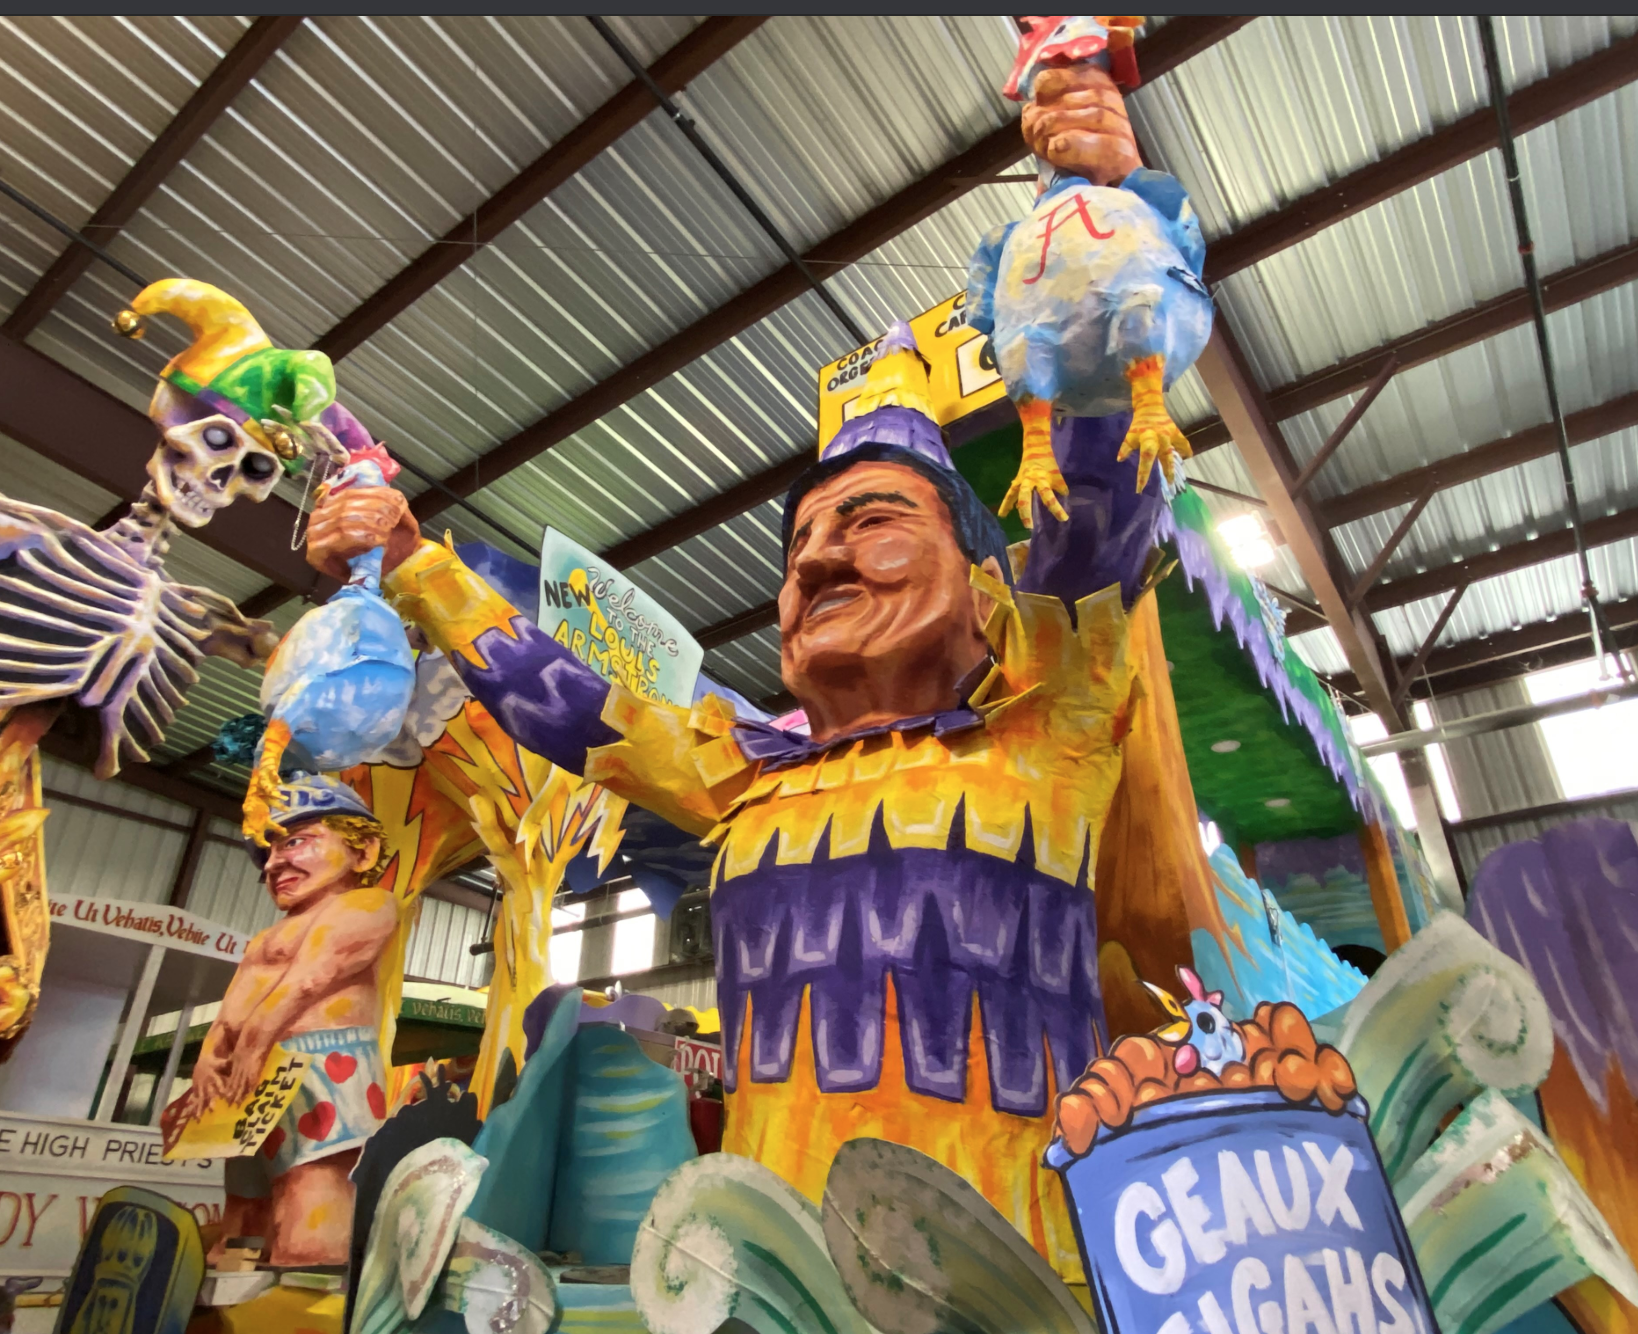 Ed Orgeron featured on intricate Mardi Gras float